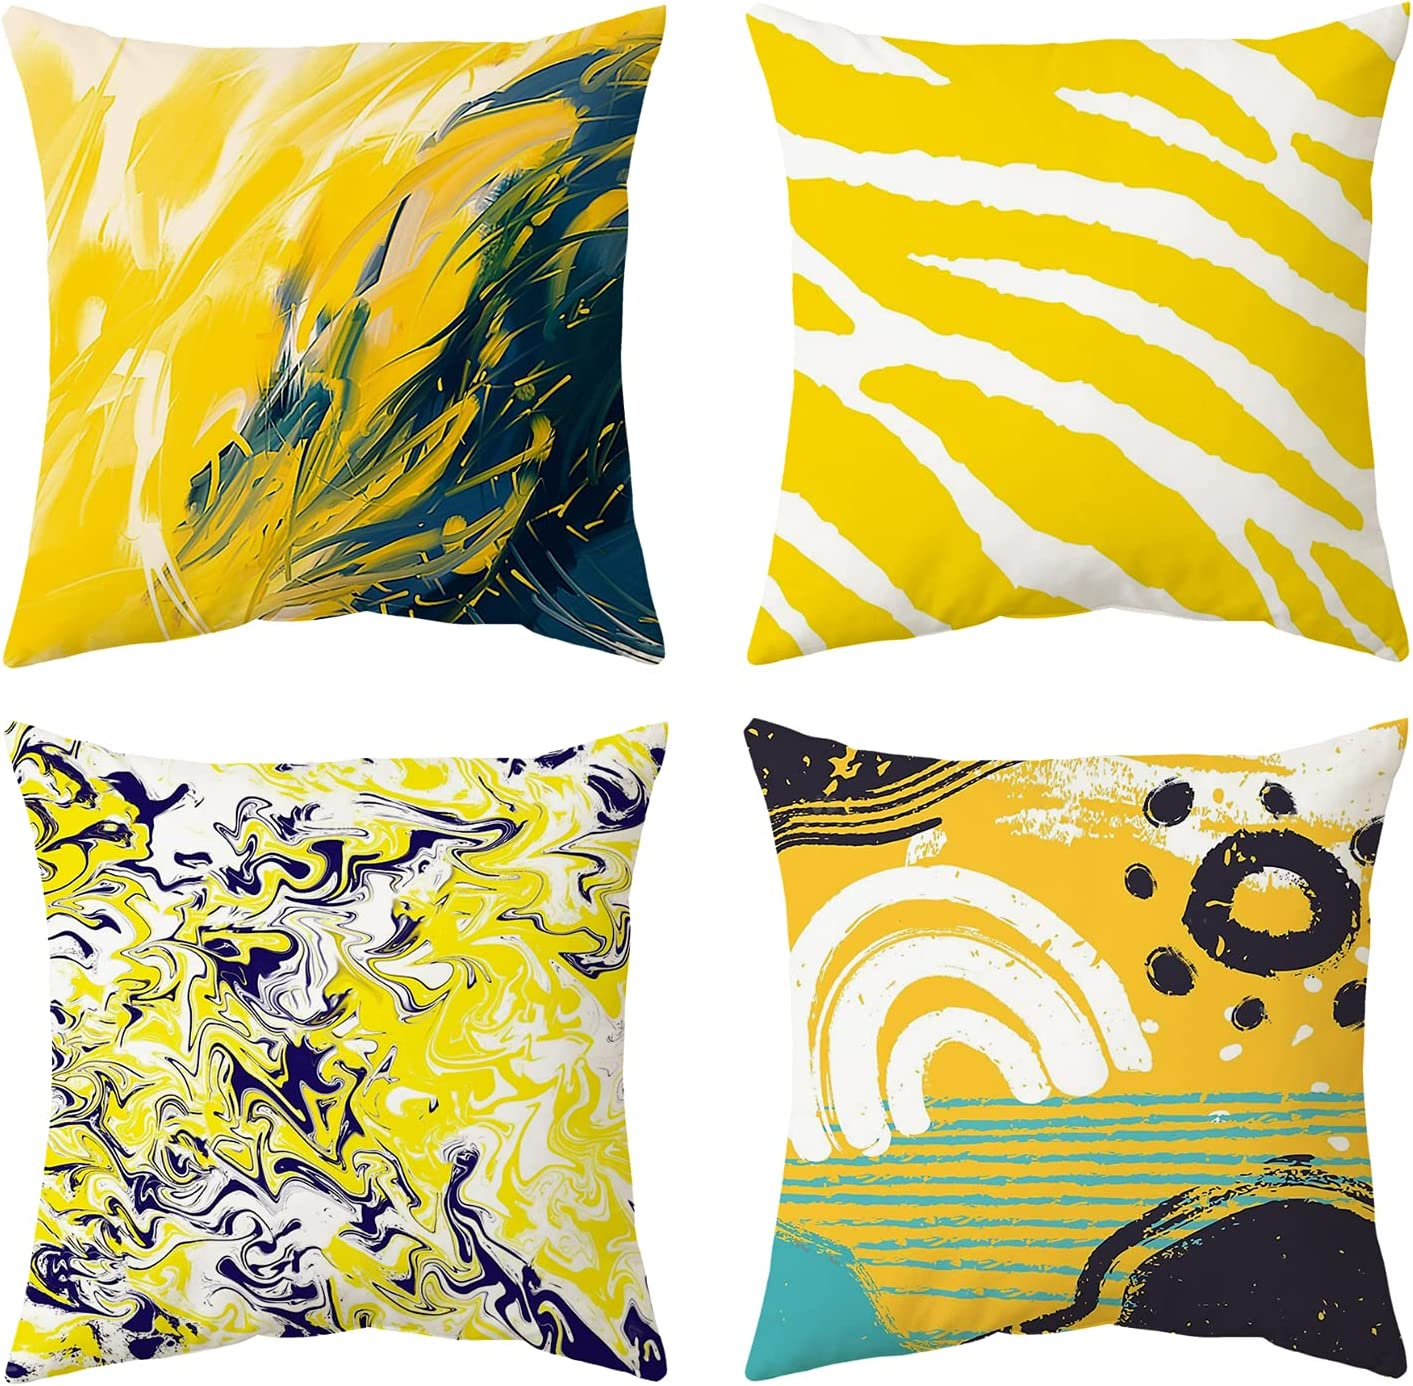 CYSNATU Throw Pillow Covers 18x18 4 Yellow Set Manufacturer direct delivery of Cover NEW